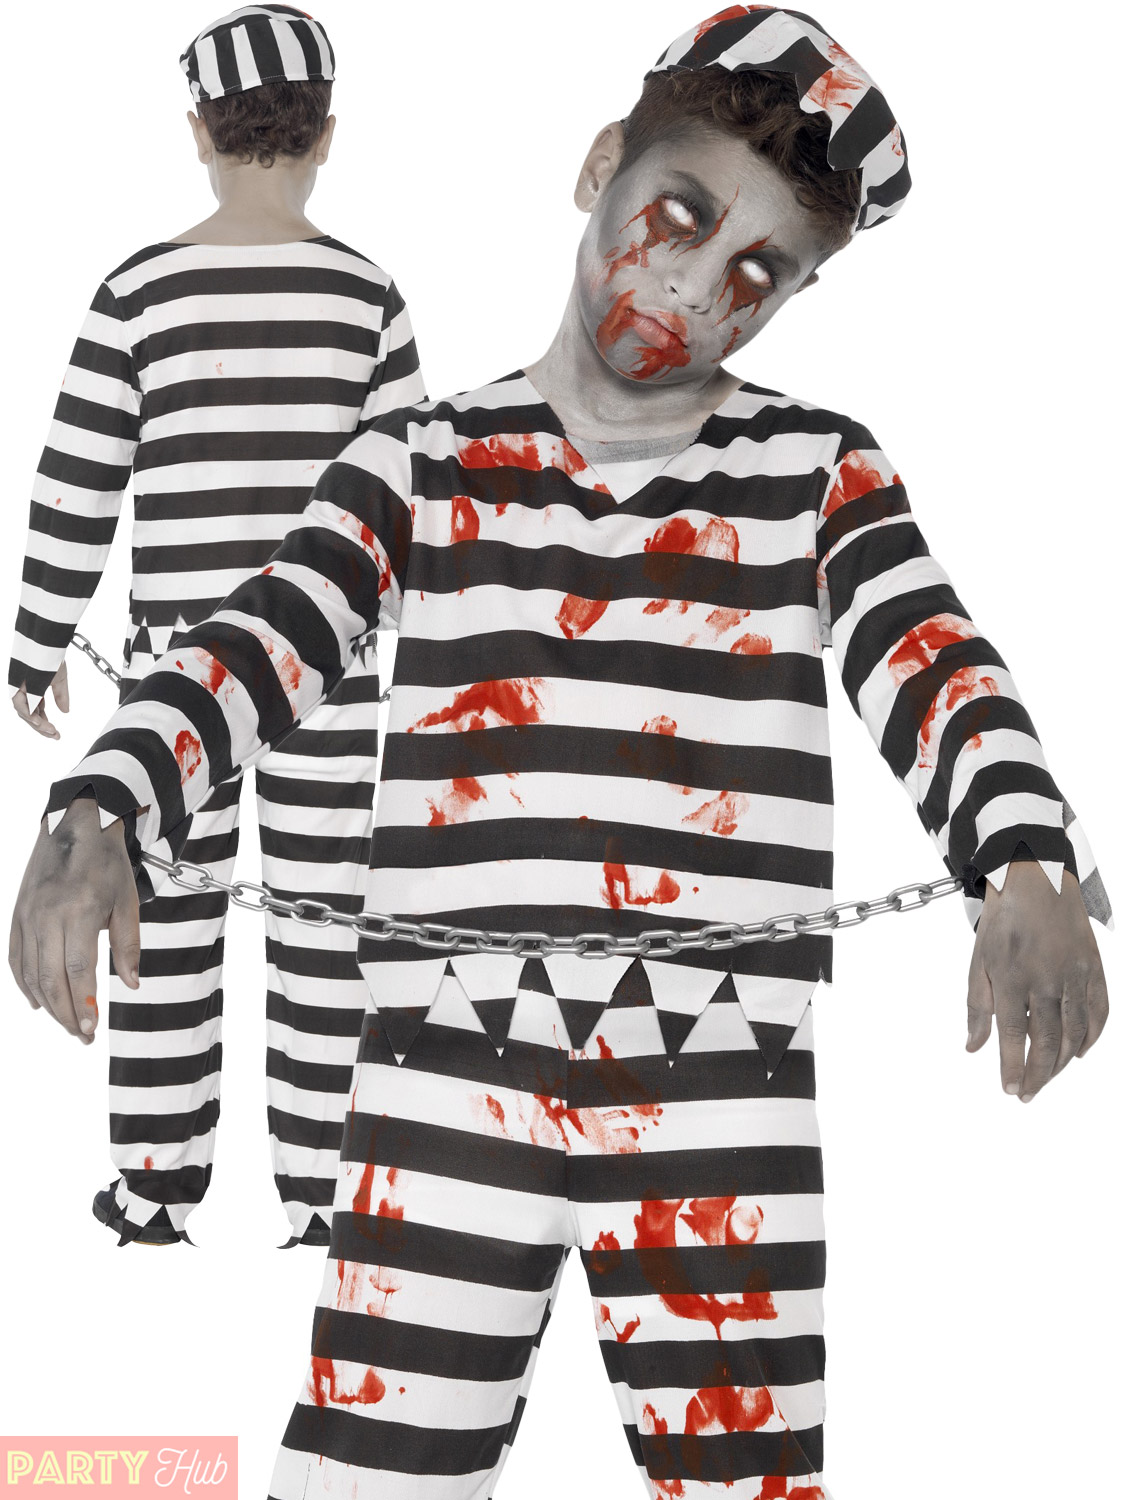 a053032cd06 Details about Childrens Zombie Convict Prisoner Costume Boys Halloween  Fancy Dress Kids Outfit